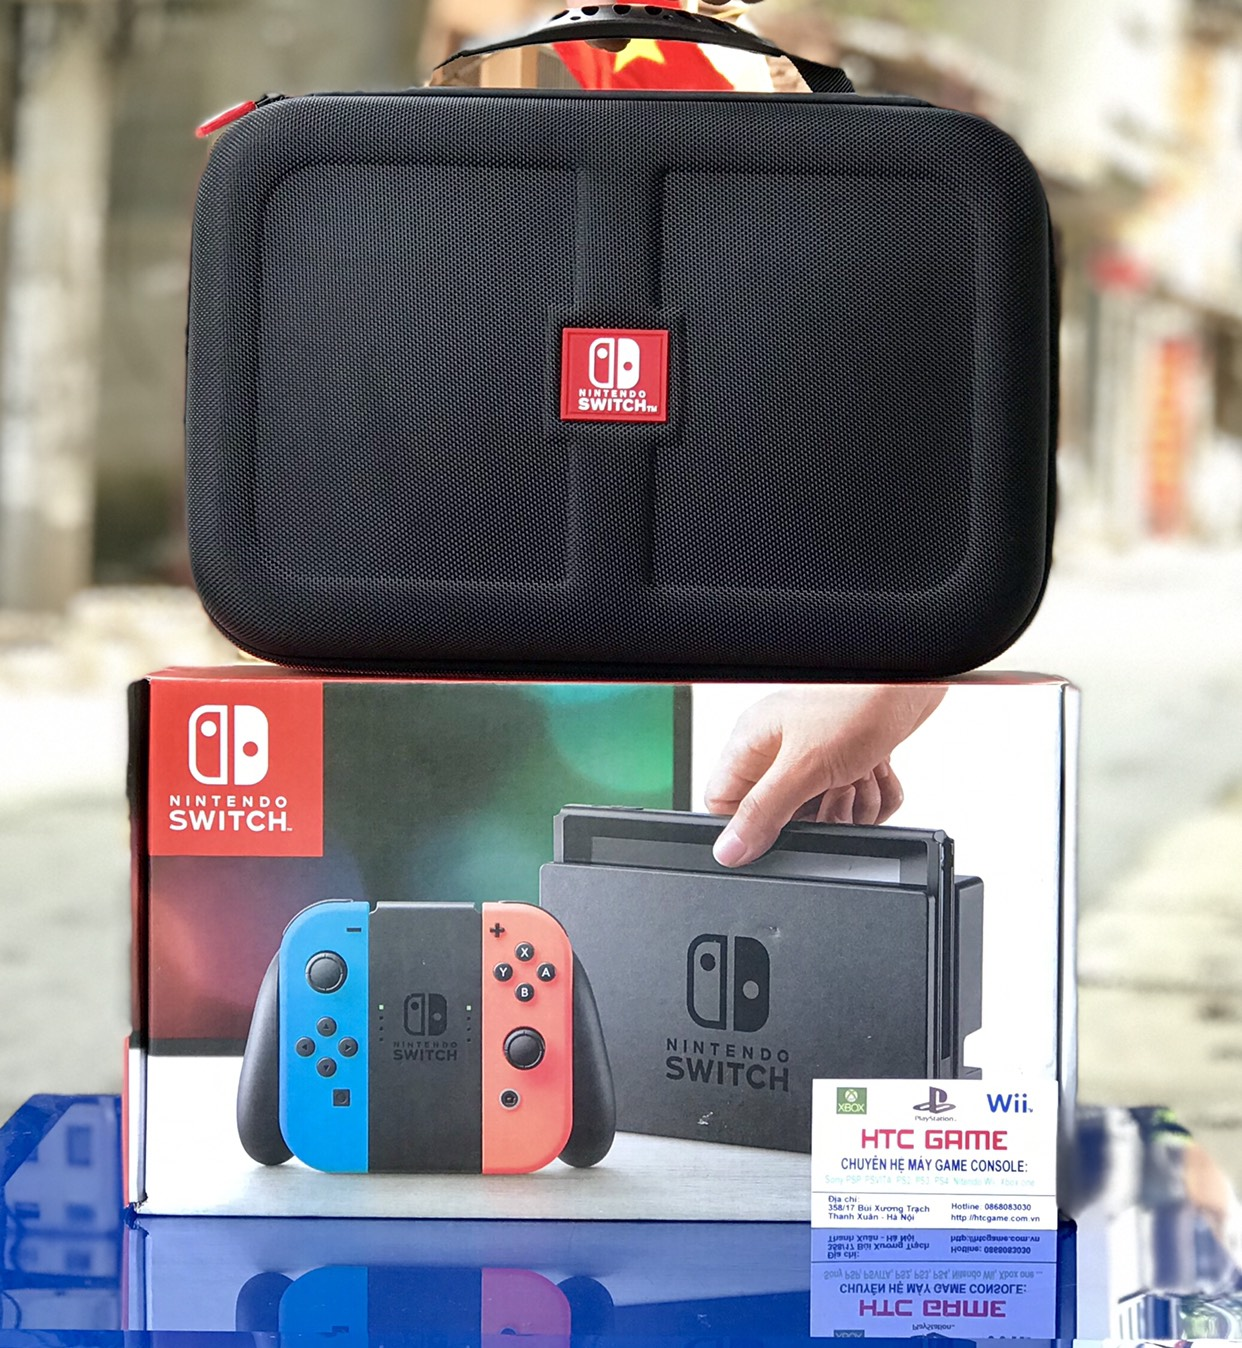 may-game-nintendo-switch-neon-red-xanh-do-tang-tui-dung-full-do